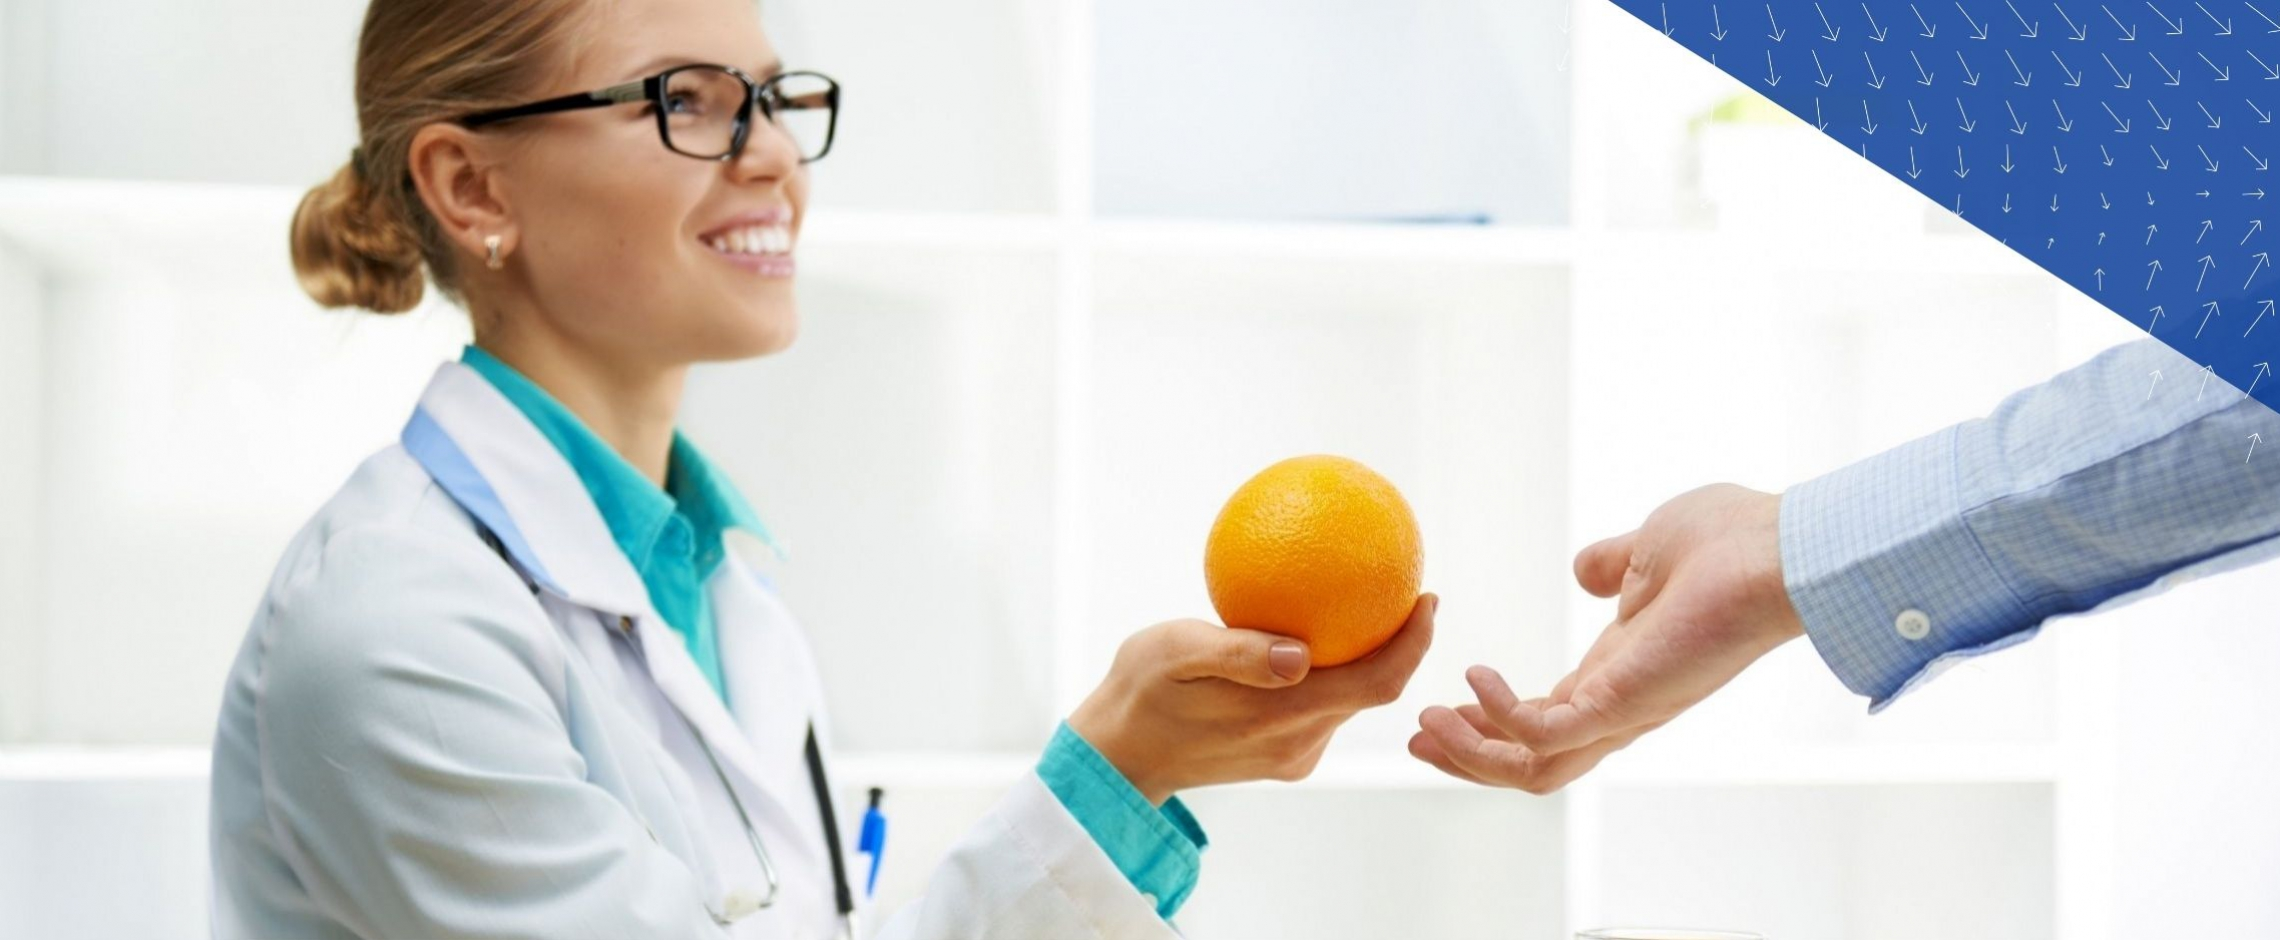 clinician holding orange